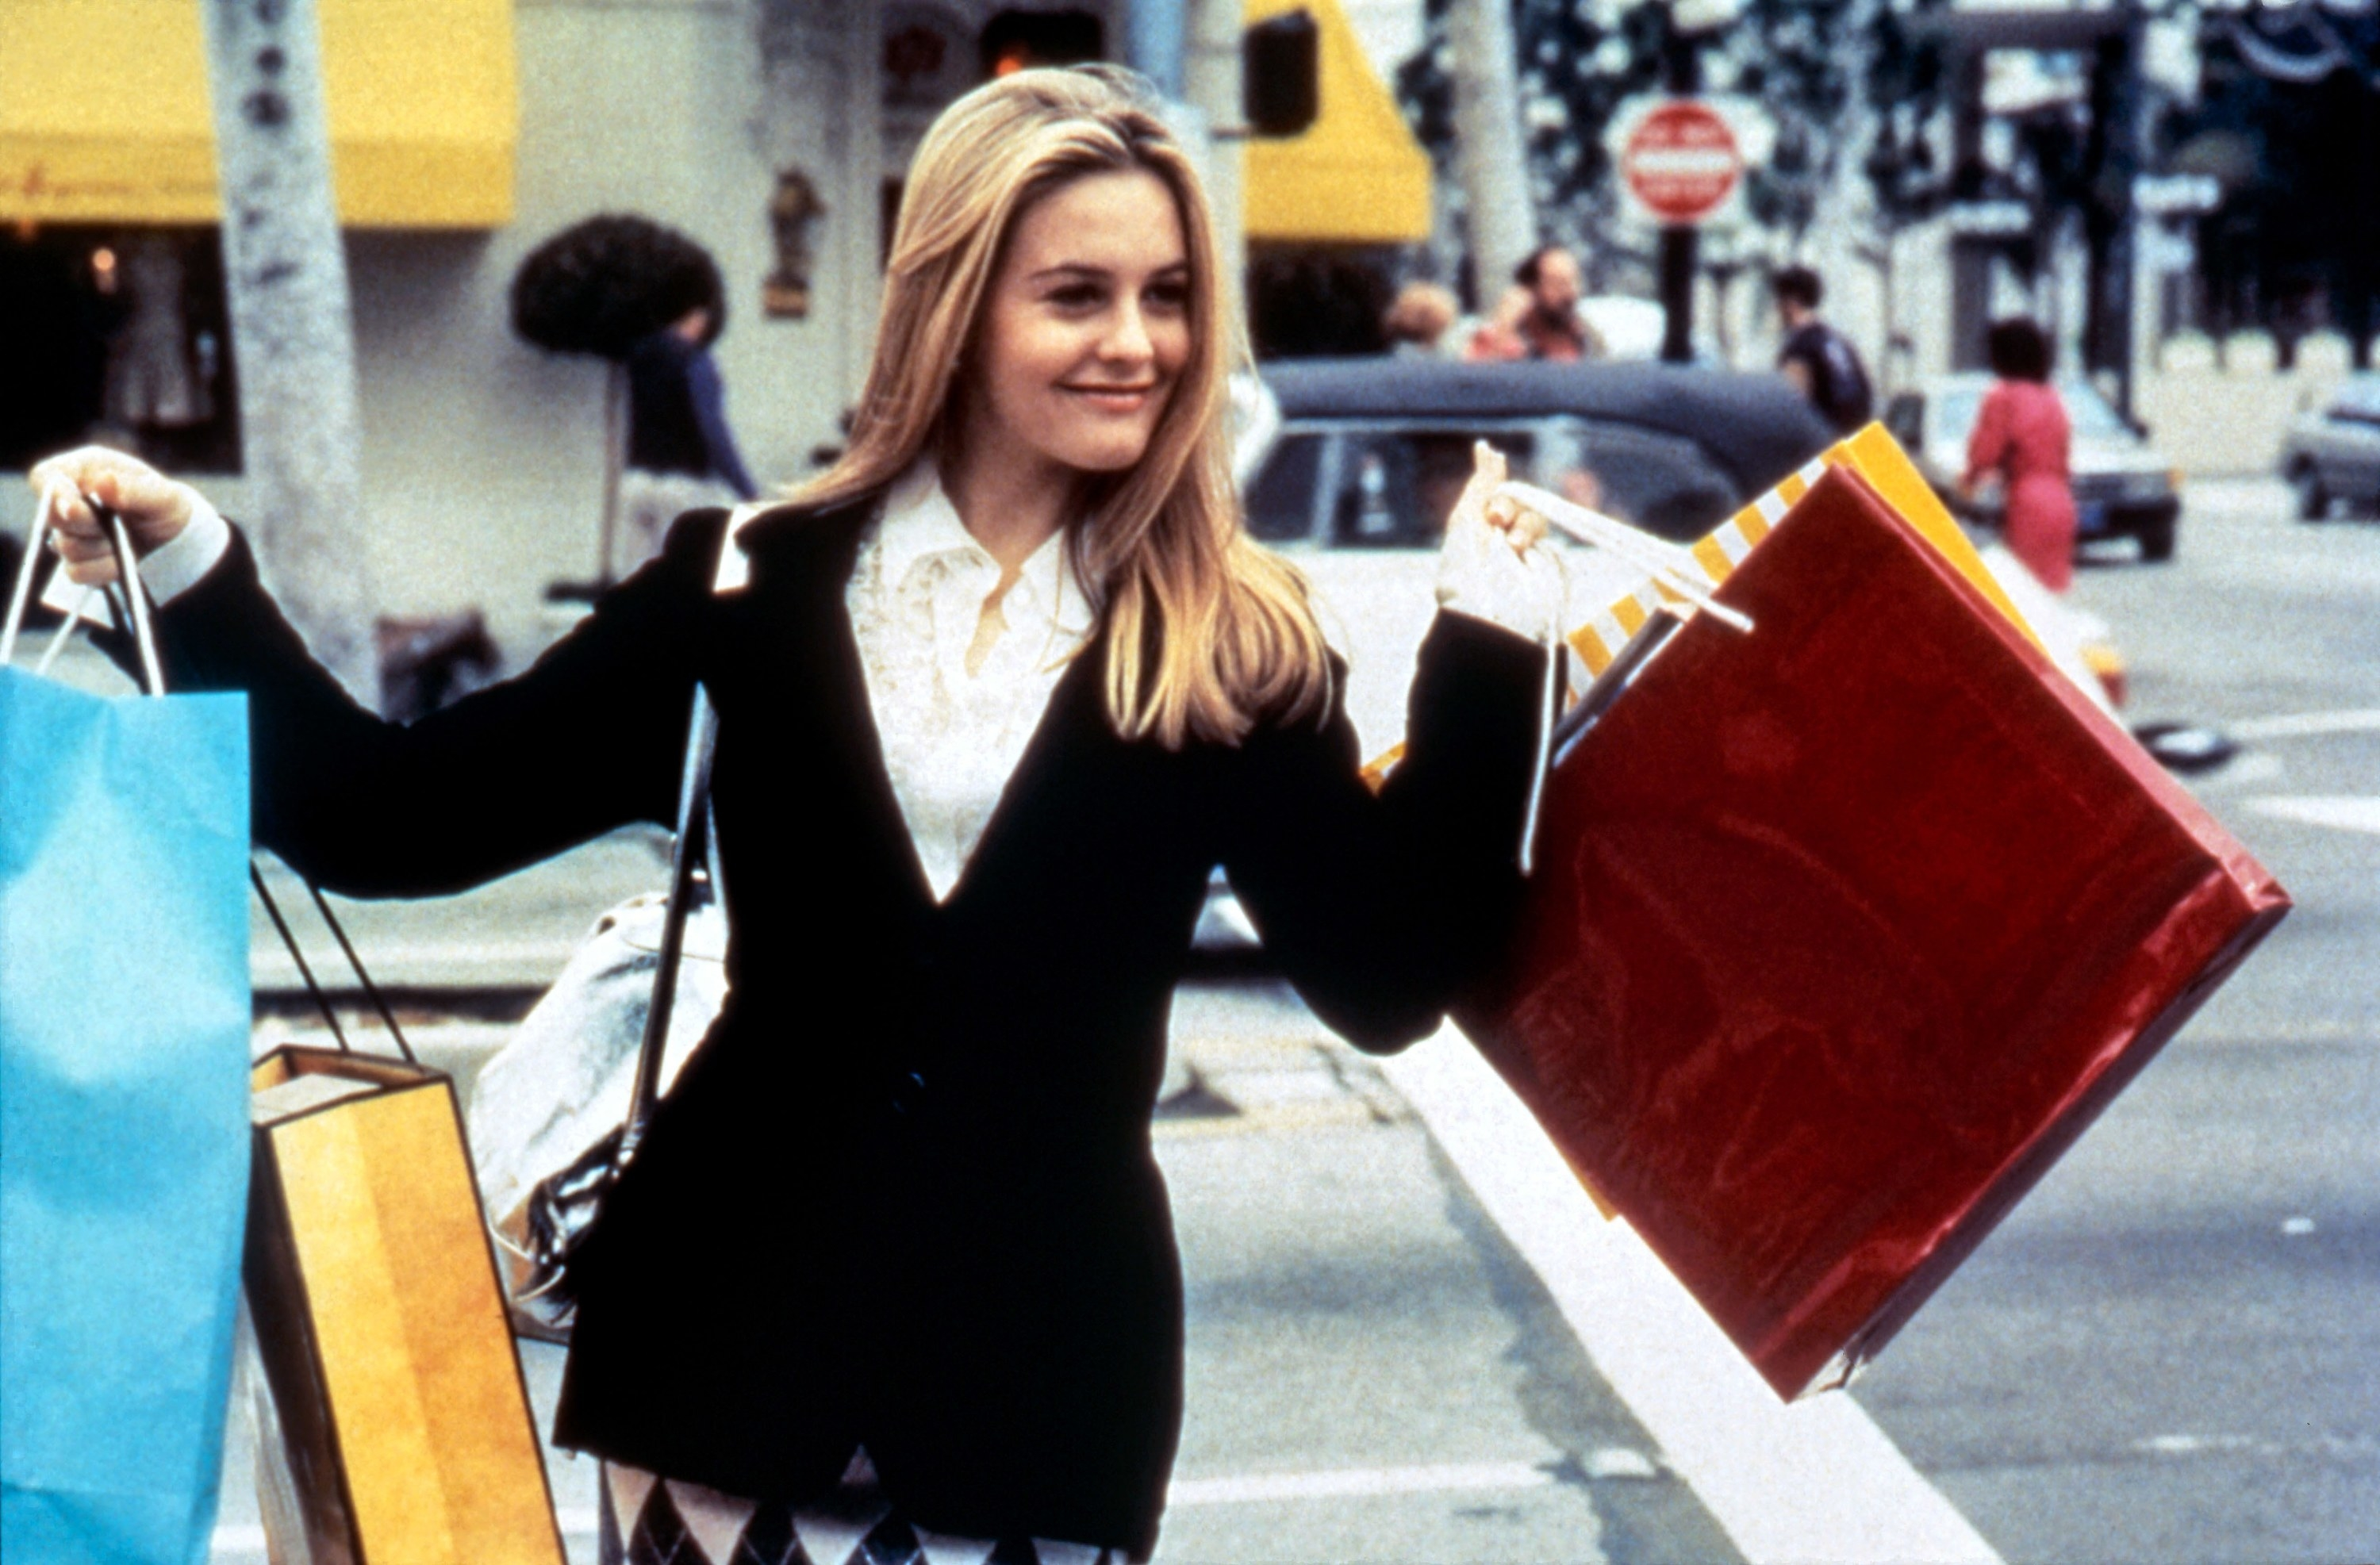 """Alicia Silverstone holds many shopping bags and smiles on set of """"Clueless"""""""